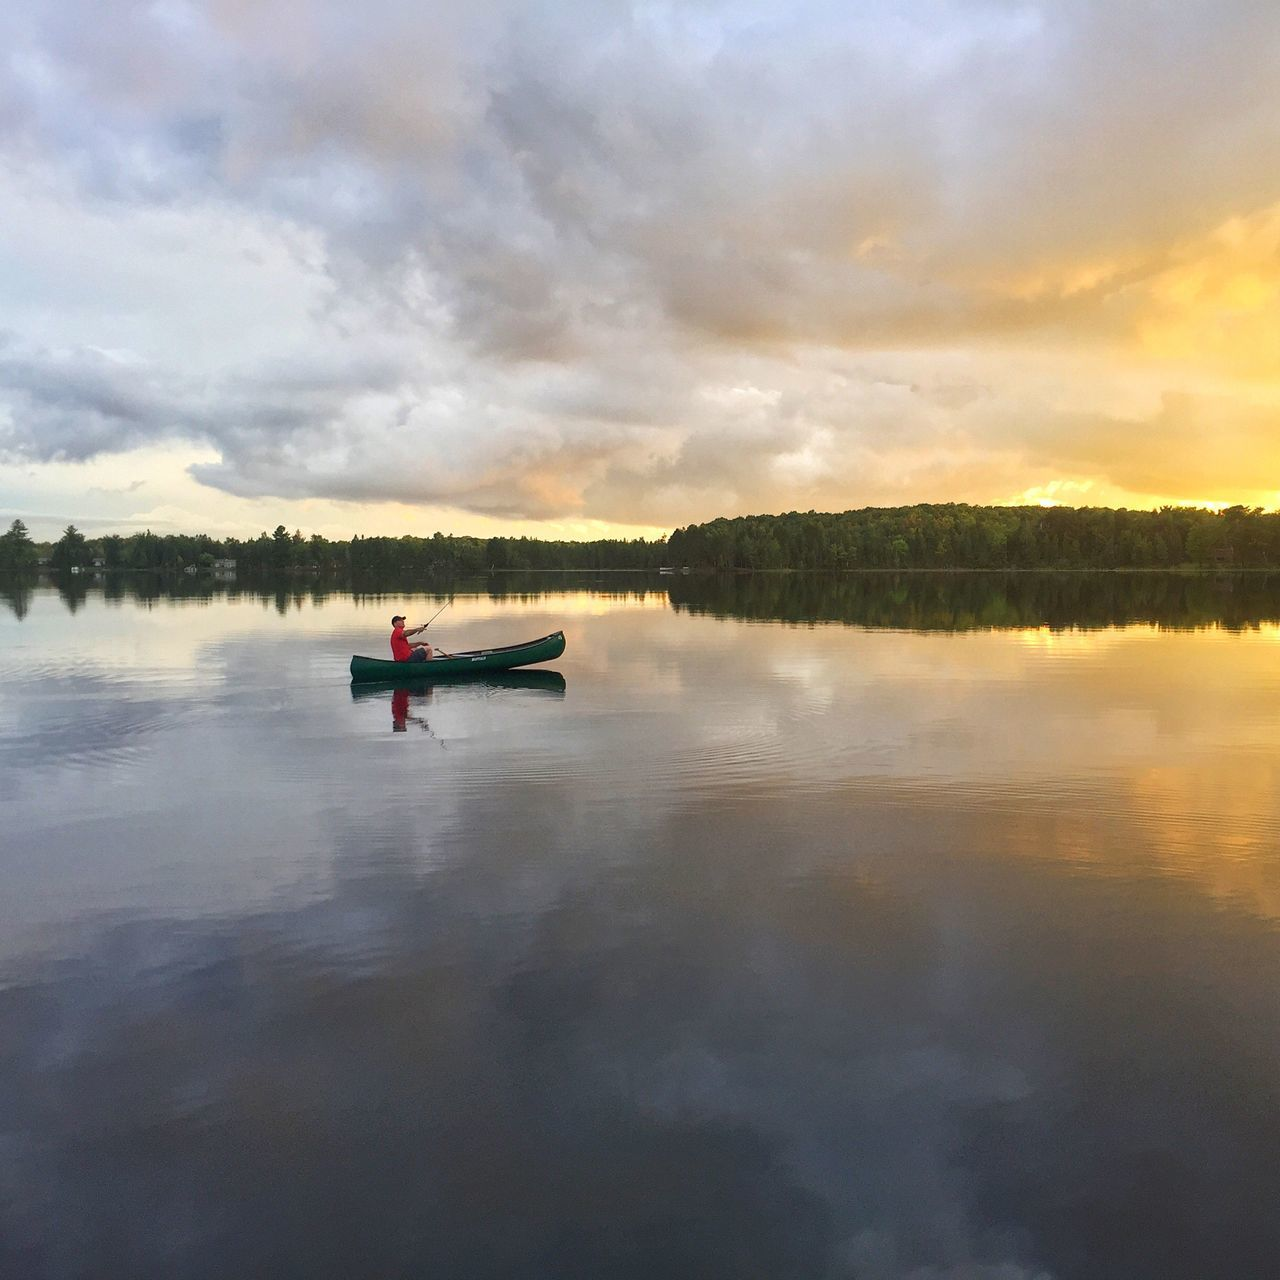 Evening fishing Water Reflection Tranquility Lake Sunset Cloud Sky Canoe Nature Tranquil Scene